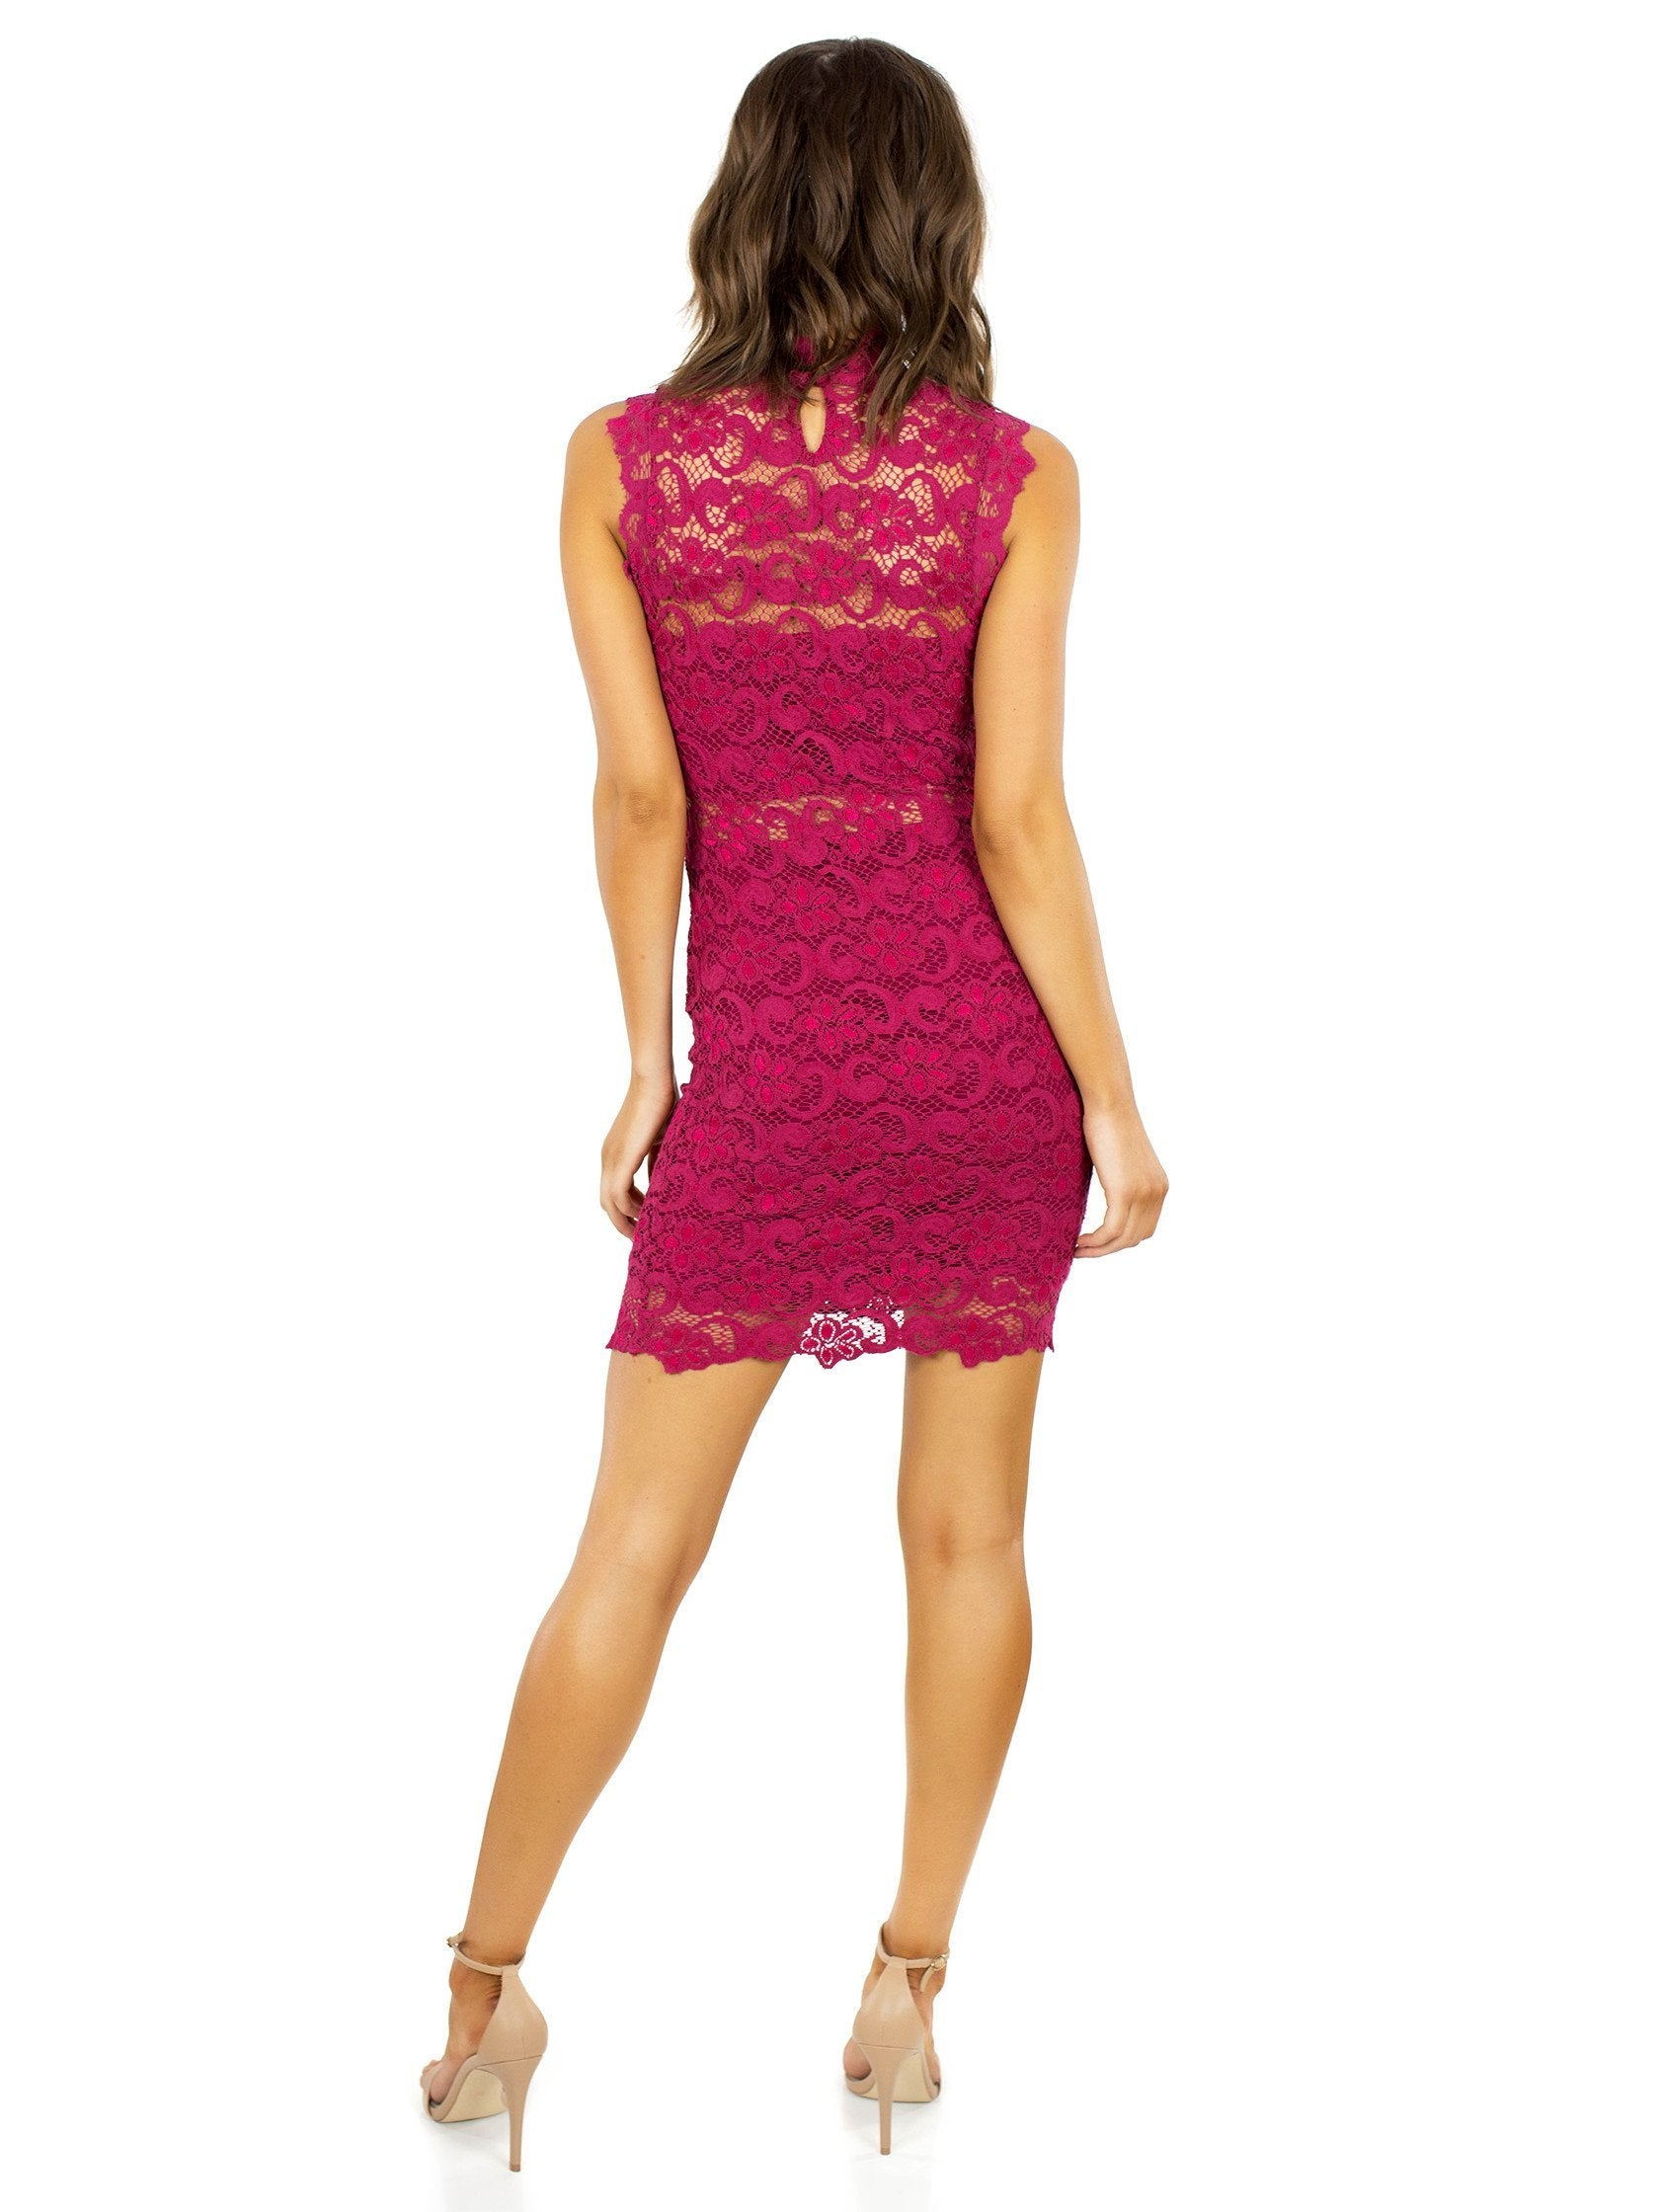 Women wearing a dress rental from Nightcap Clothing called Dixie Lace Cutout Mini Dress